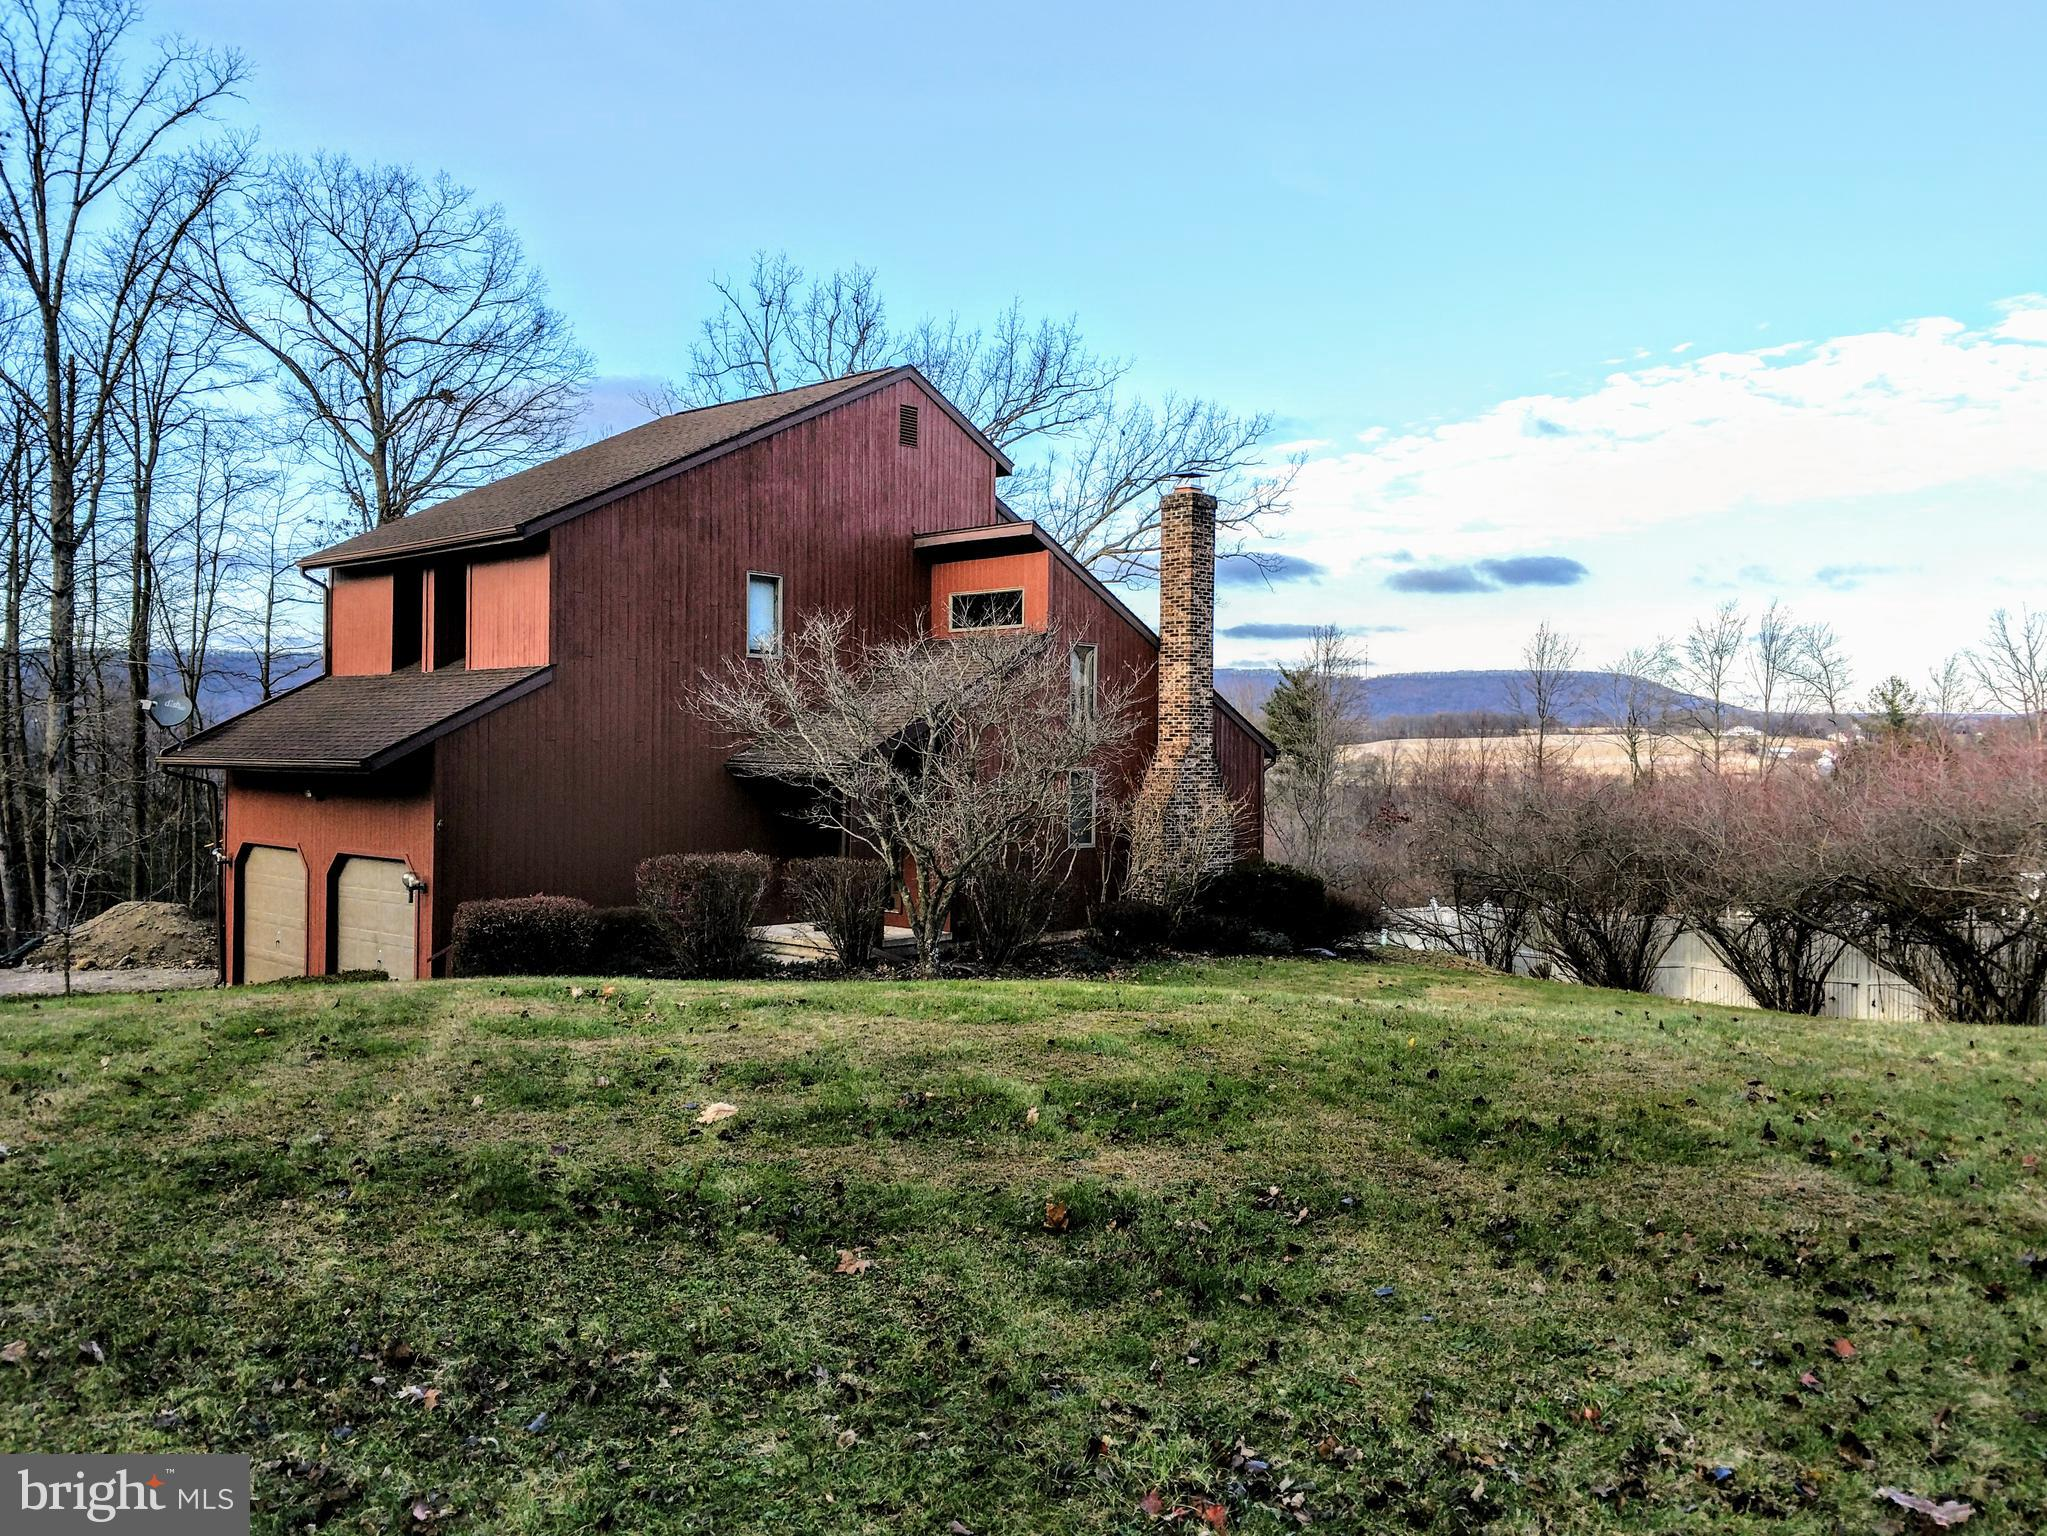 593 AIRPORT ROAD, ASHLAND, PA 17921